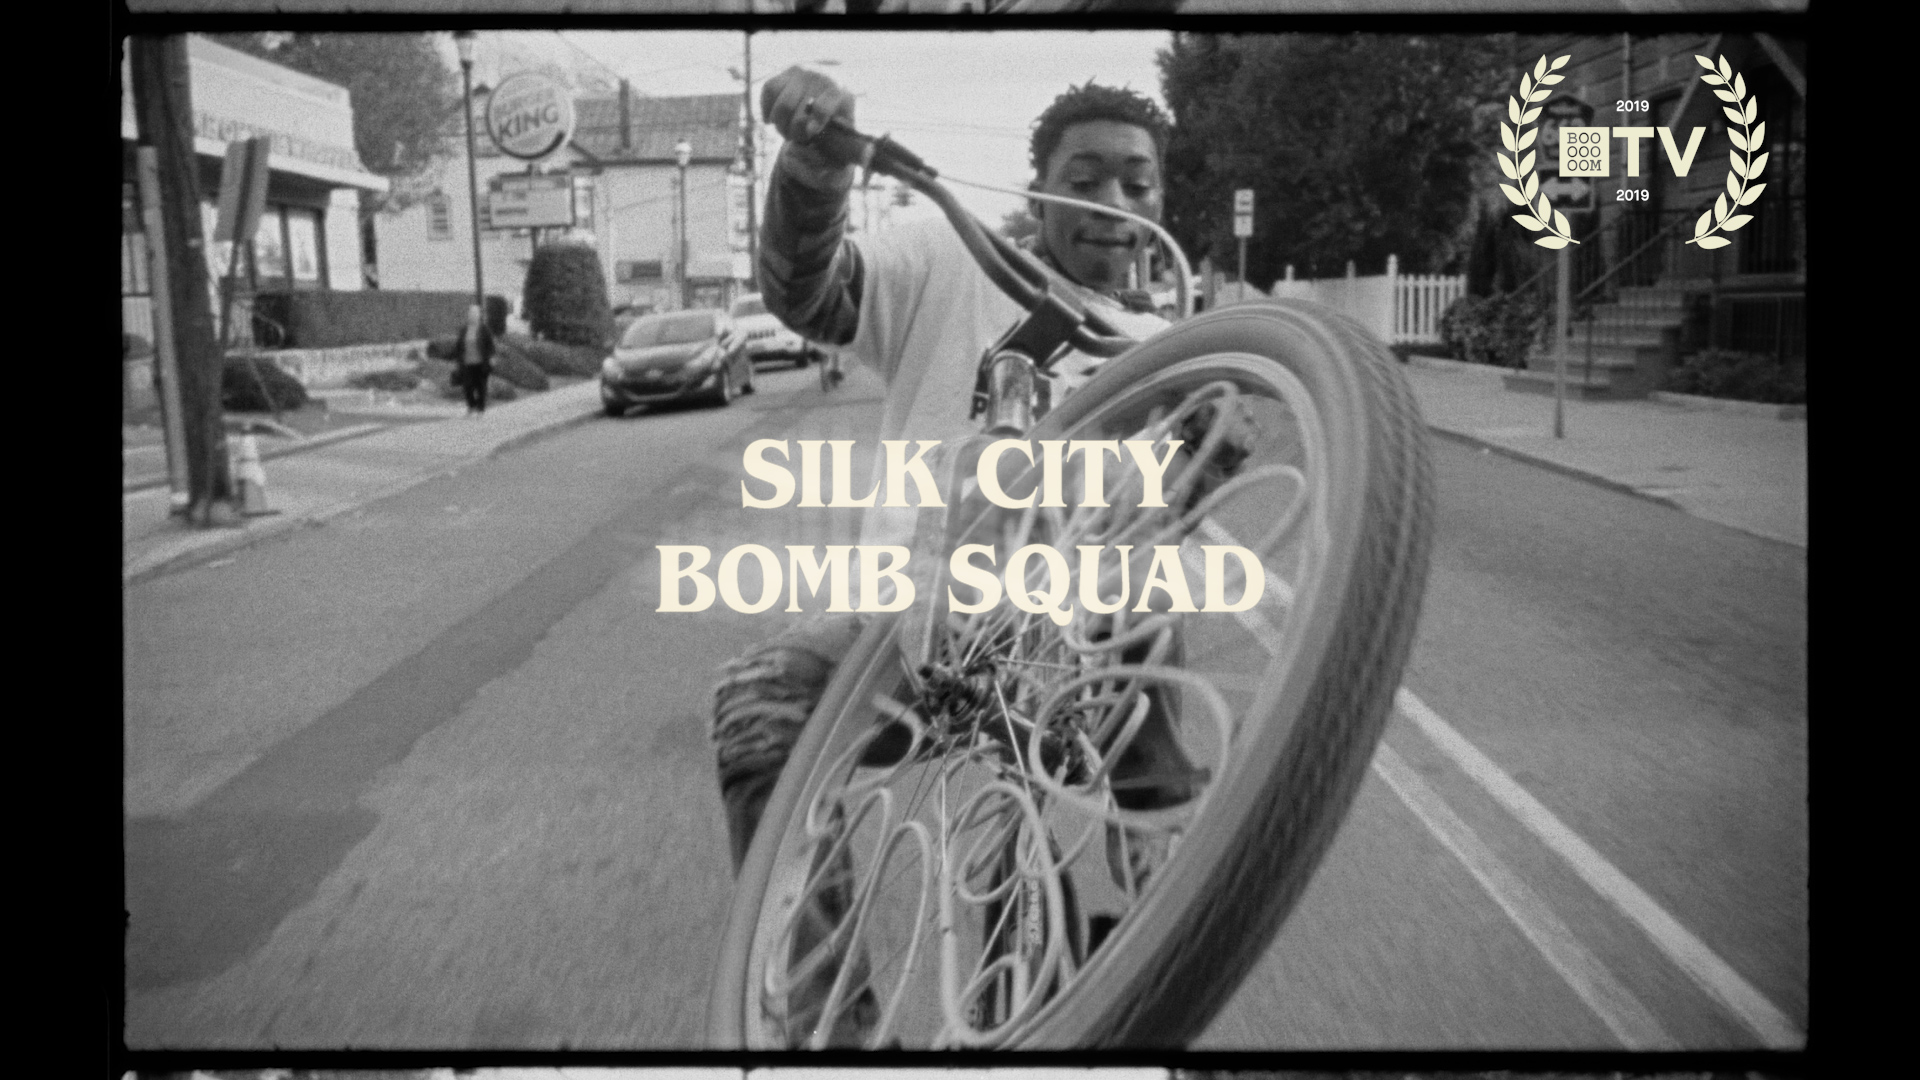 Silk City Bomb Squad